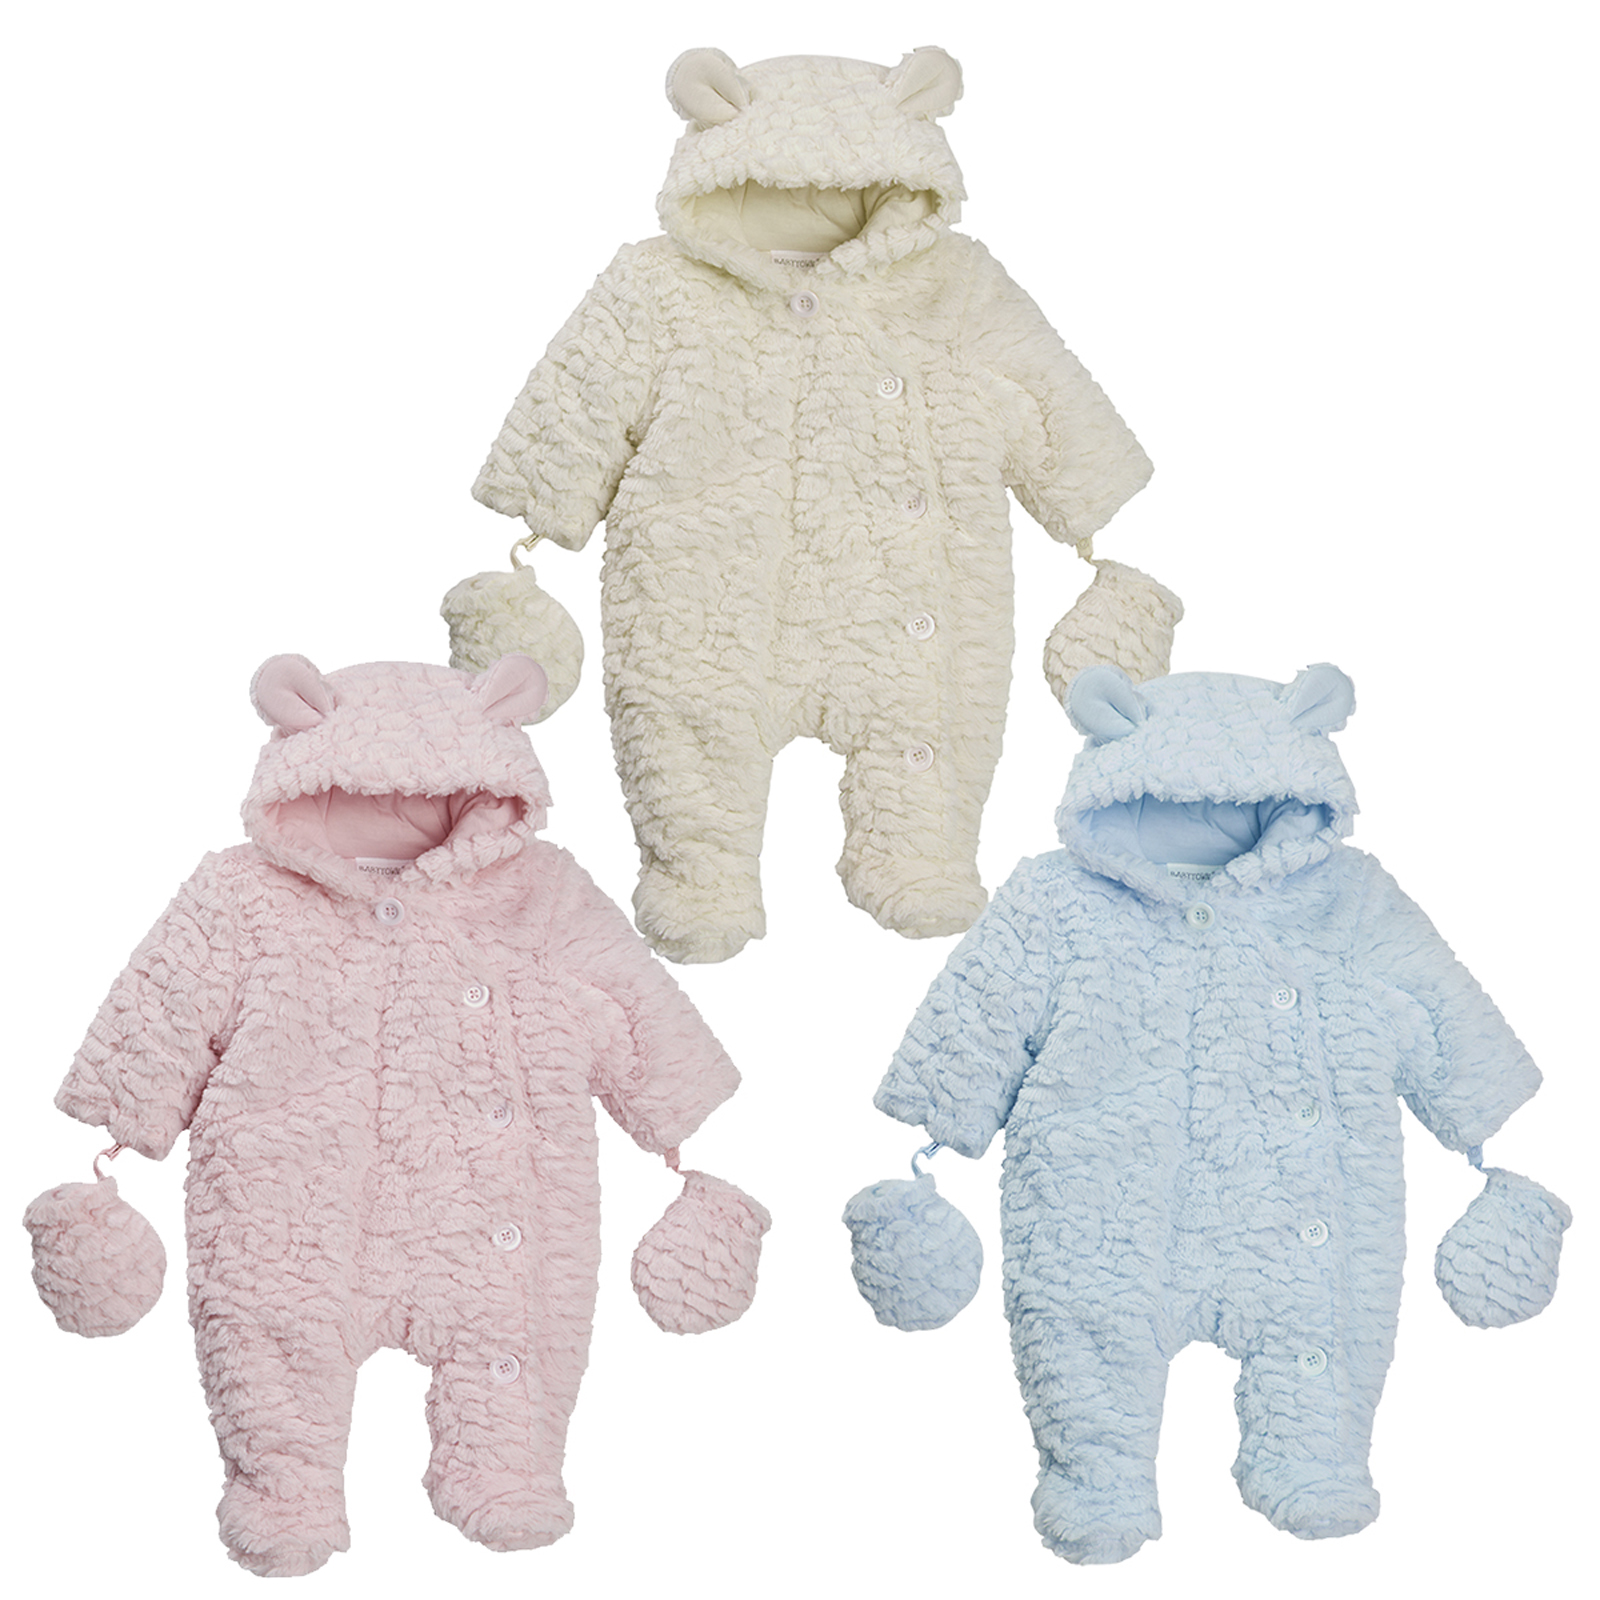 Old Navy Baby Boys Fleece Bunting Snowsuit Size Months Ears Navy Blue. $ Buy It Now. Very nice baby boy's striped Old Navy fleece bunting snowsuit, size months. Baby Bunting Snowsuit Old Navy 6 12 months Bear Ears and Stars Fleece and Sherpa. $ 0 bids.